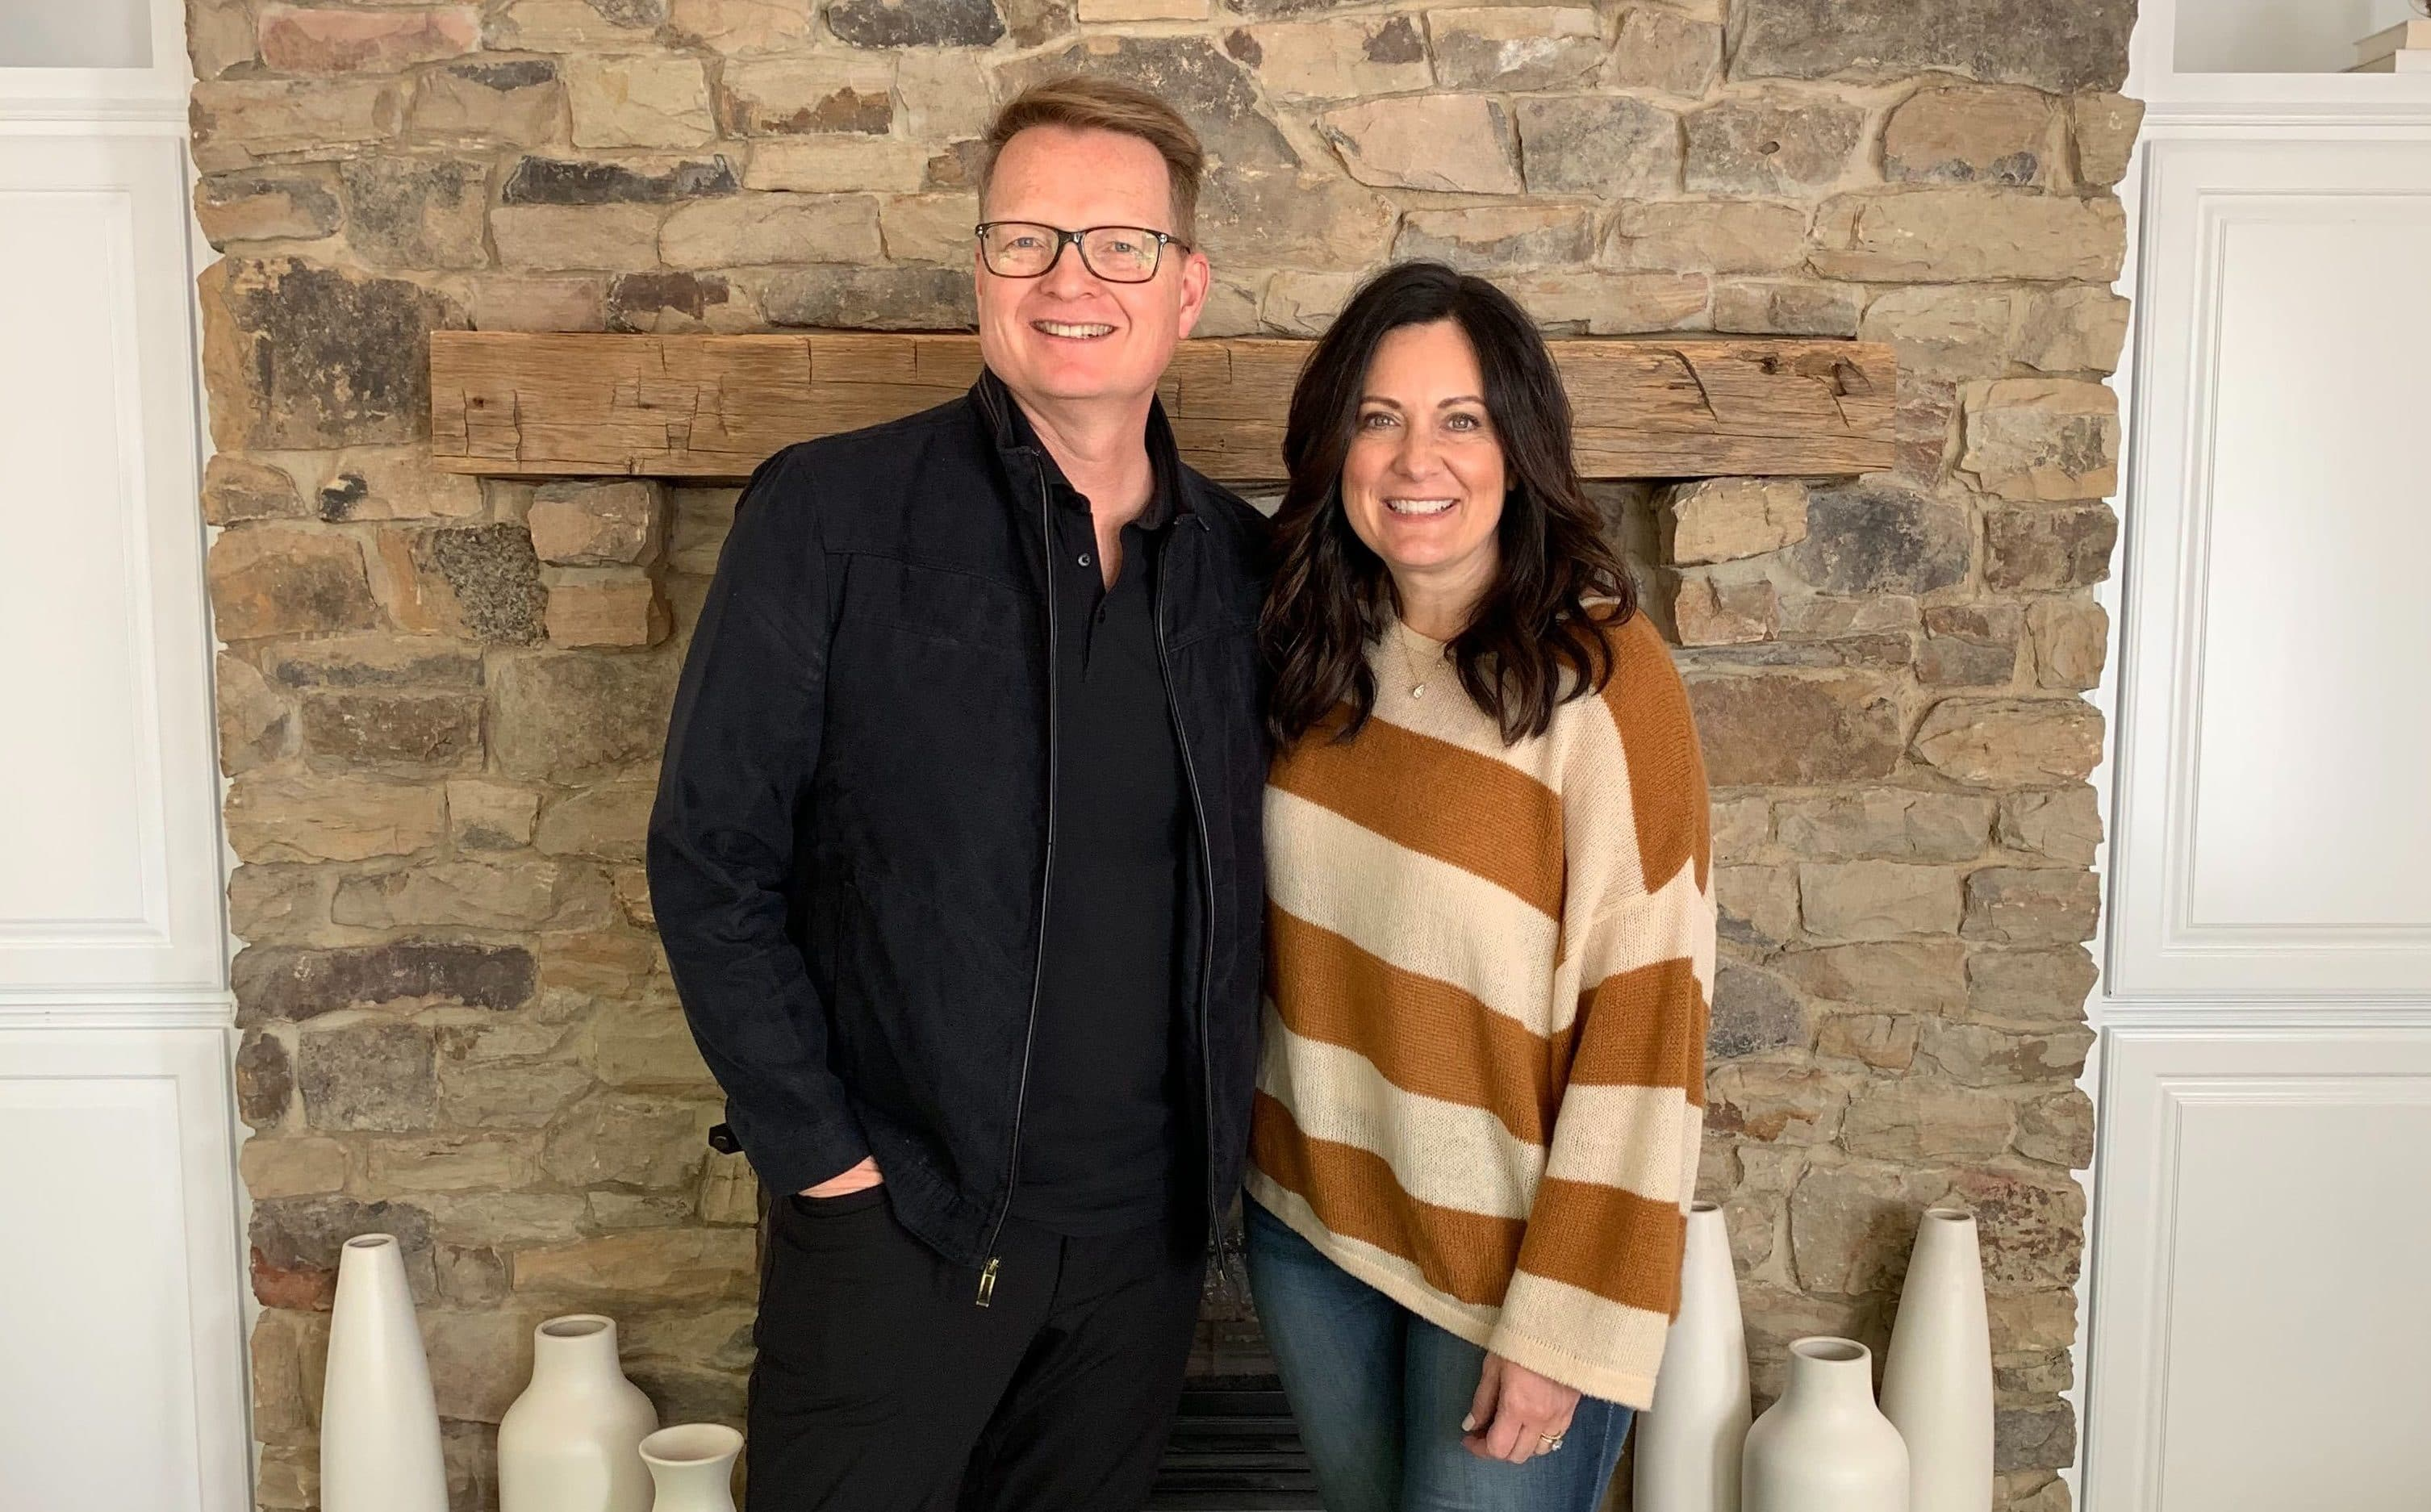 CNLP 327: Lysa TerKeurst on How to 10x Your Audience, Craft Messages that Actually Connect with People, and Discover Which Voice You Have as a Communicator